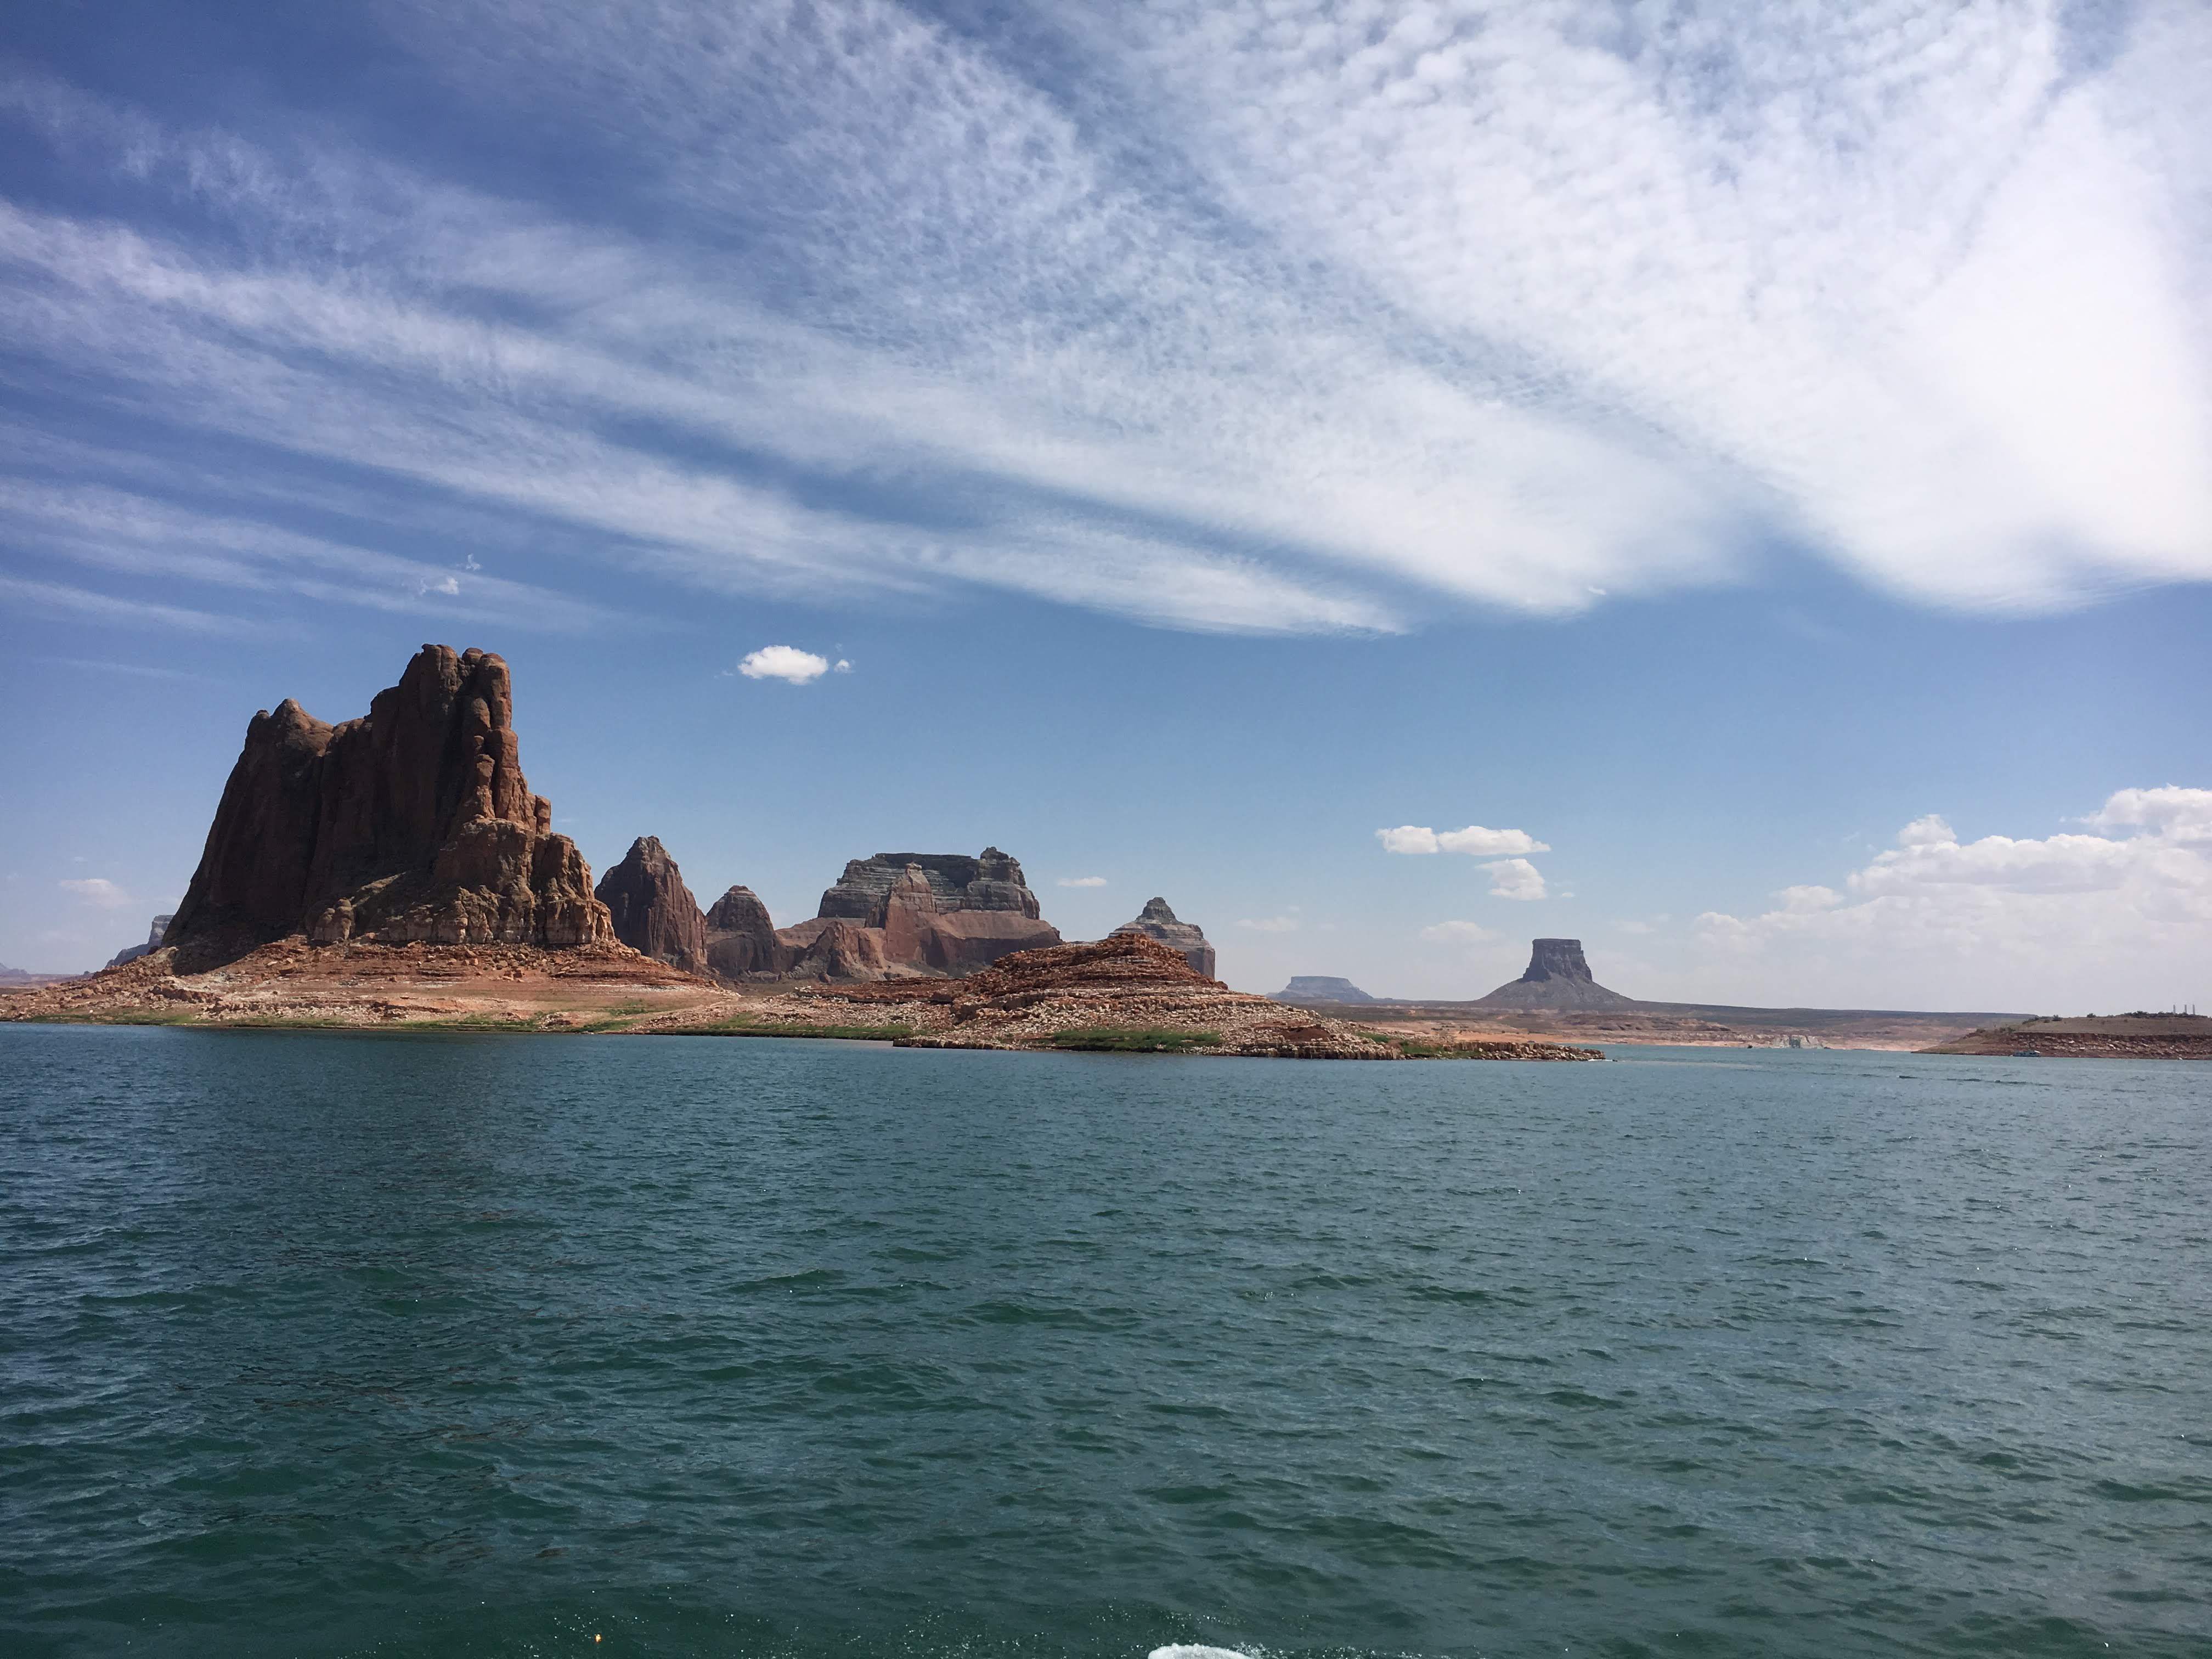 The tranquility of Lake Powell